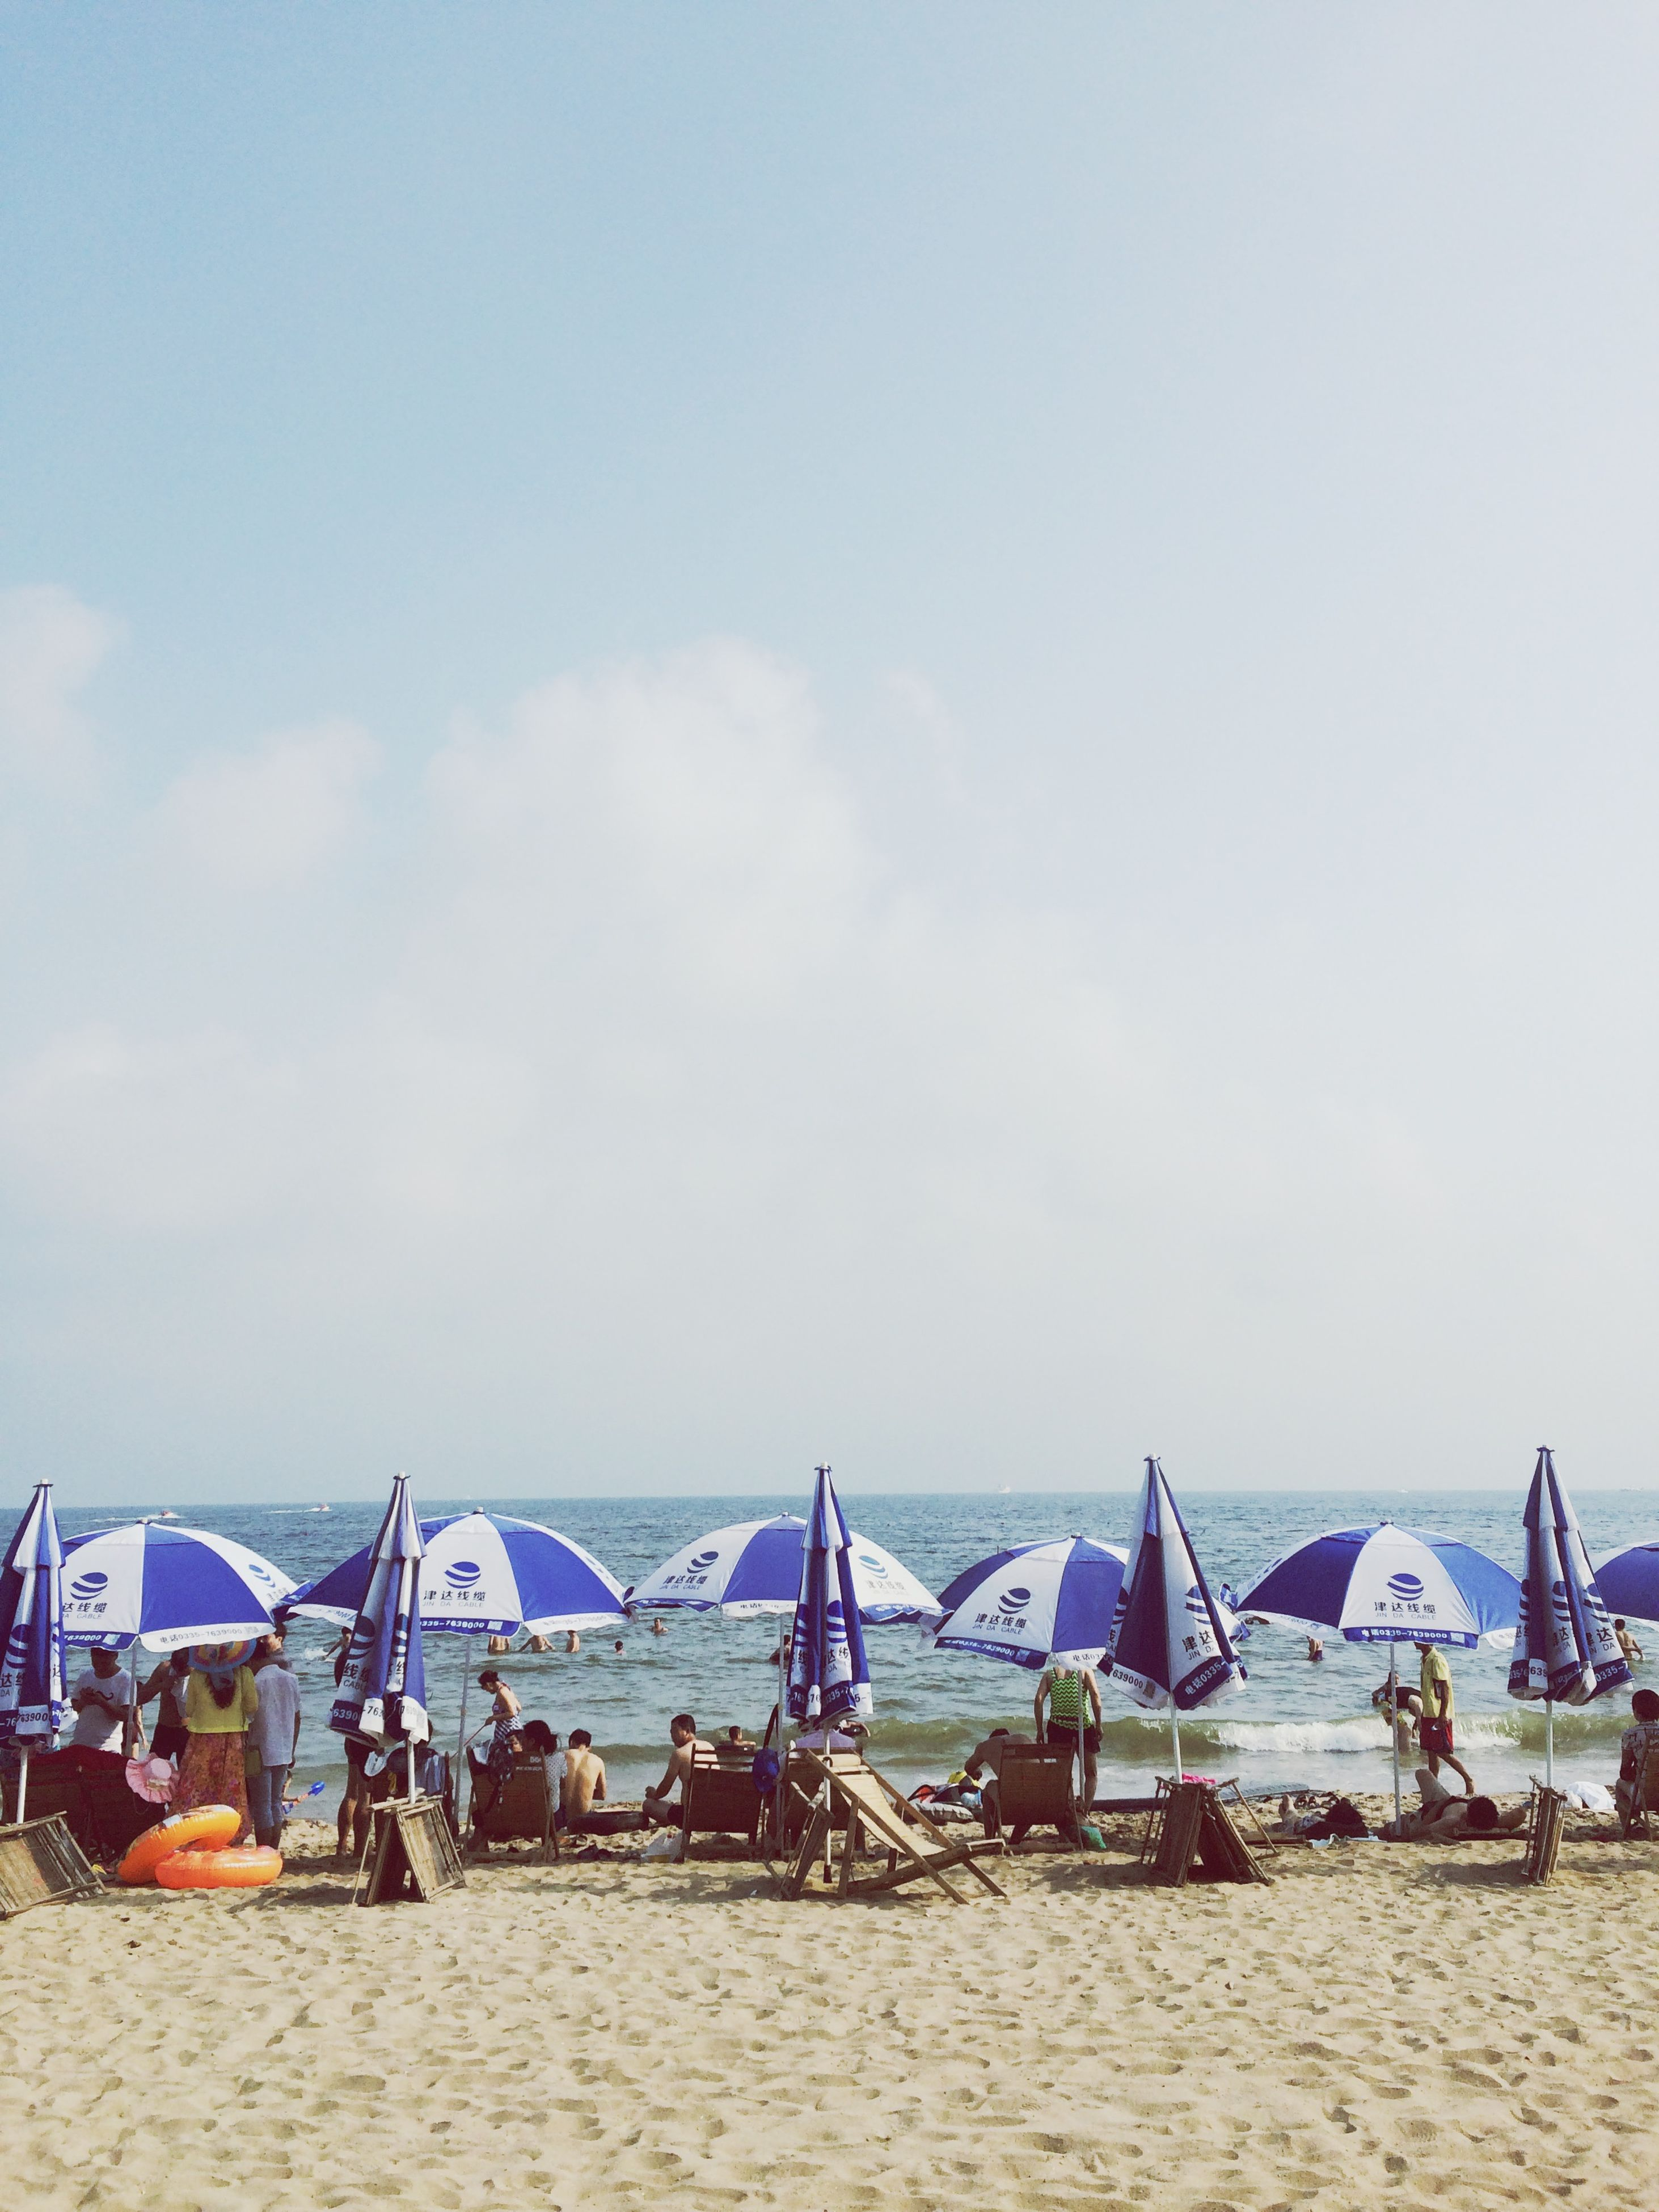 beach, sand, sea, shore, sky, beach umbrella, horizon over water, vacations, large group of people, parasol, relaxation, sunshade, summer, copy space, day, nature, leisure activity, water, blue